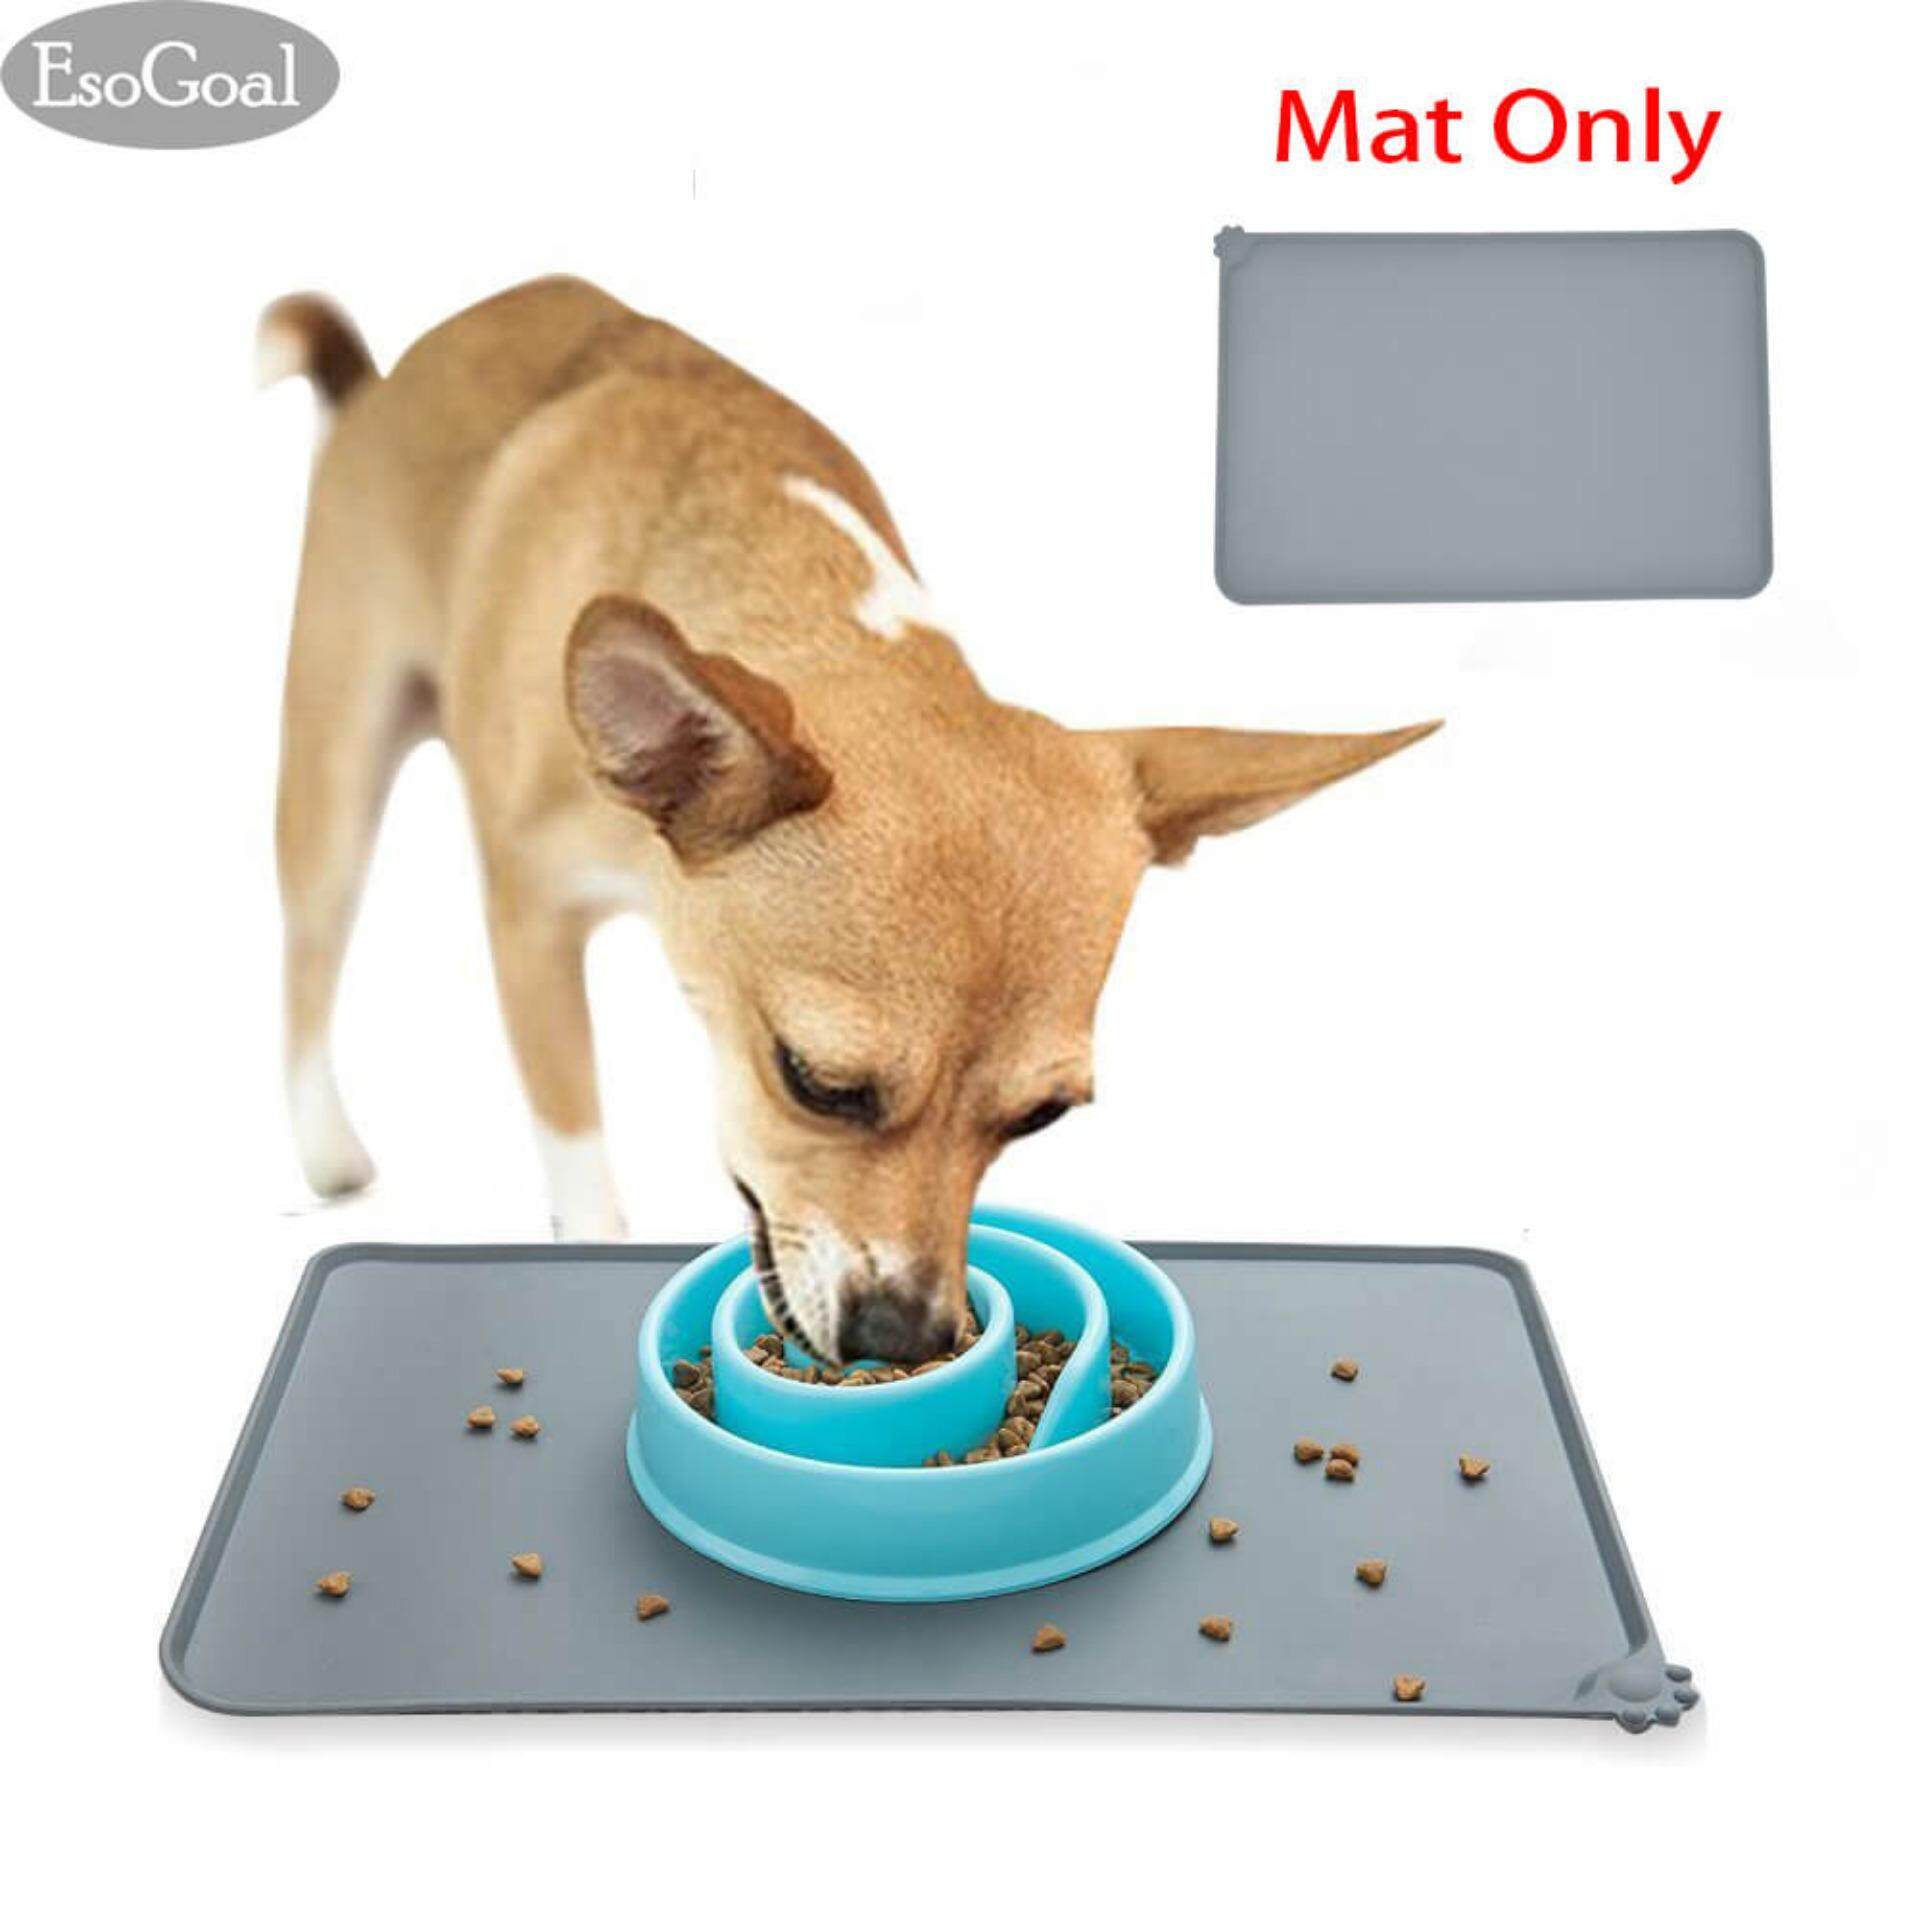 quotations time guides mat deals machine mats water on line dog at bowl pet food washable microfiber cushions find shopping large cheap bowls cat get